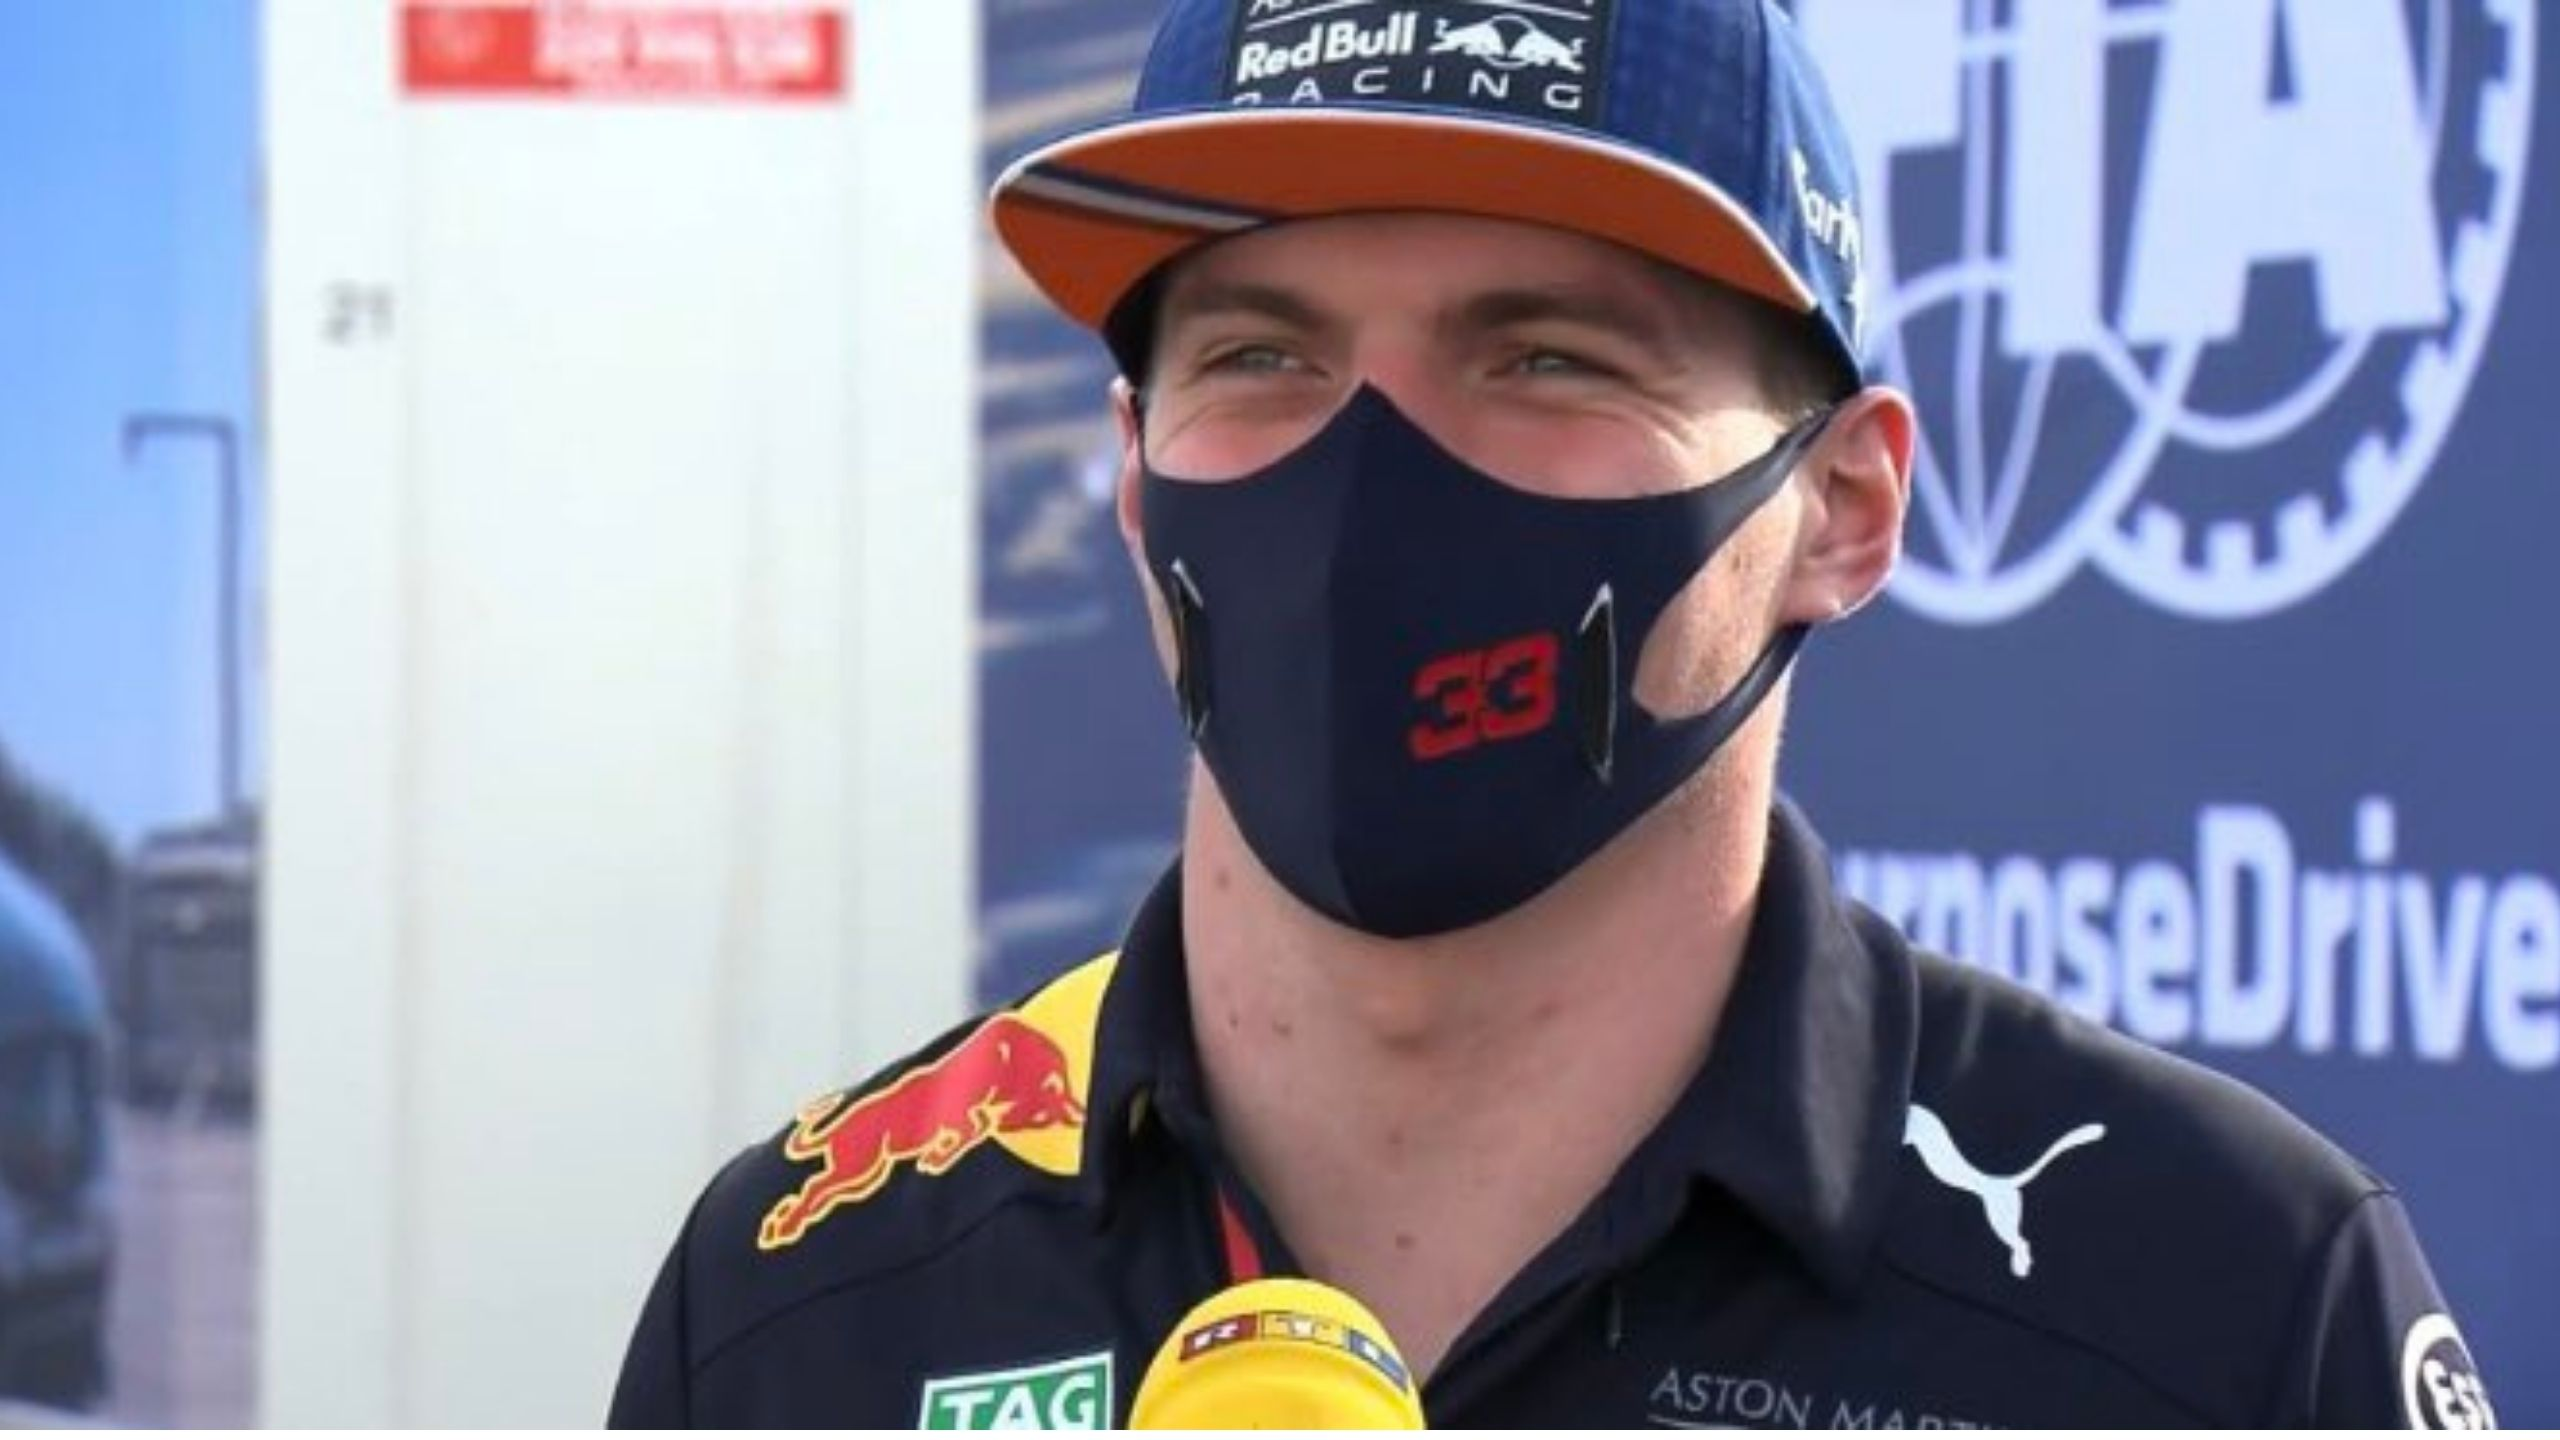 """""""I never meant to hurt anyone"""" - Max Verstappen has expressed regret for using offensive language directed towards Lance Stroll at the Portuguese Grand Prix."""